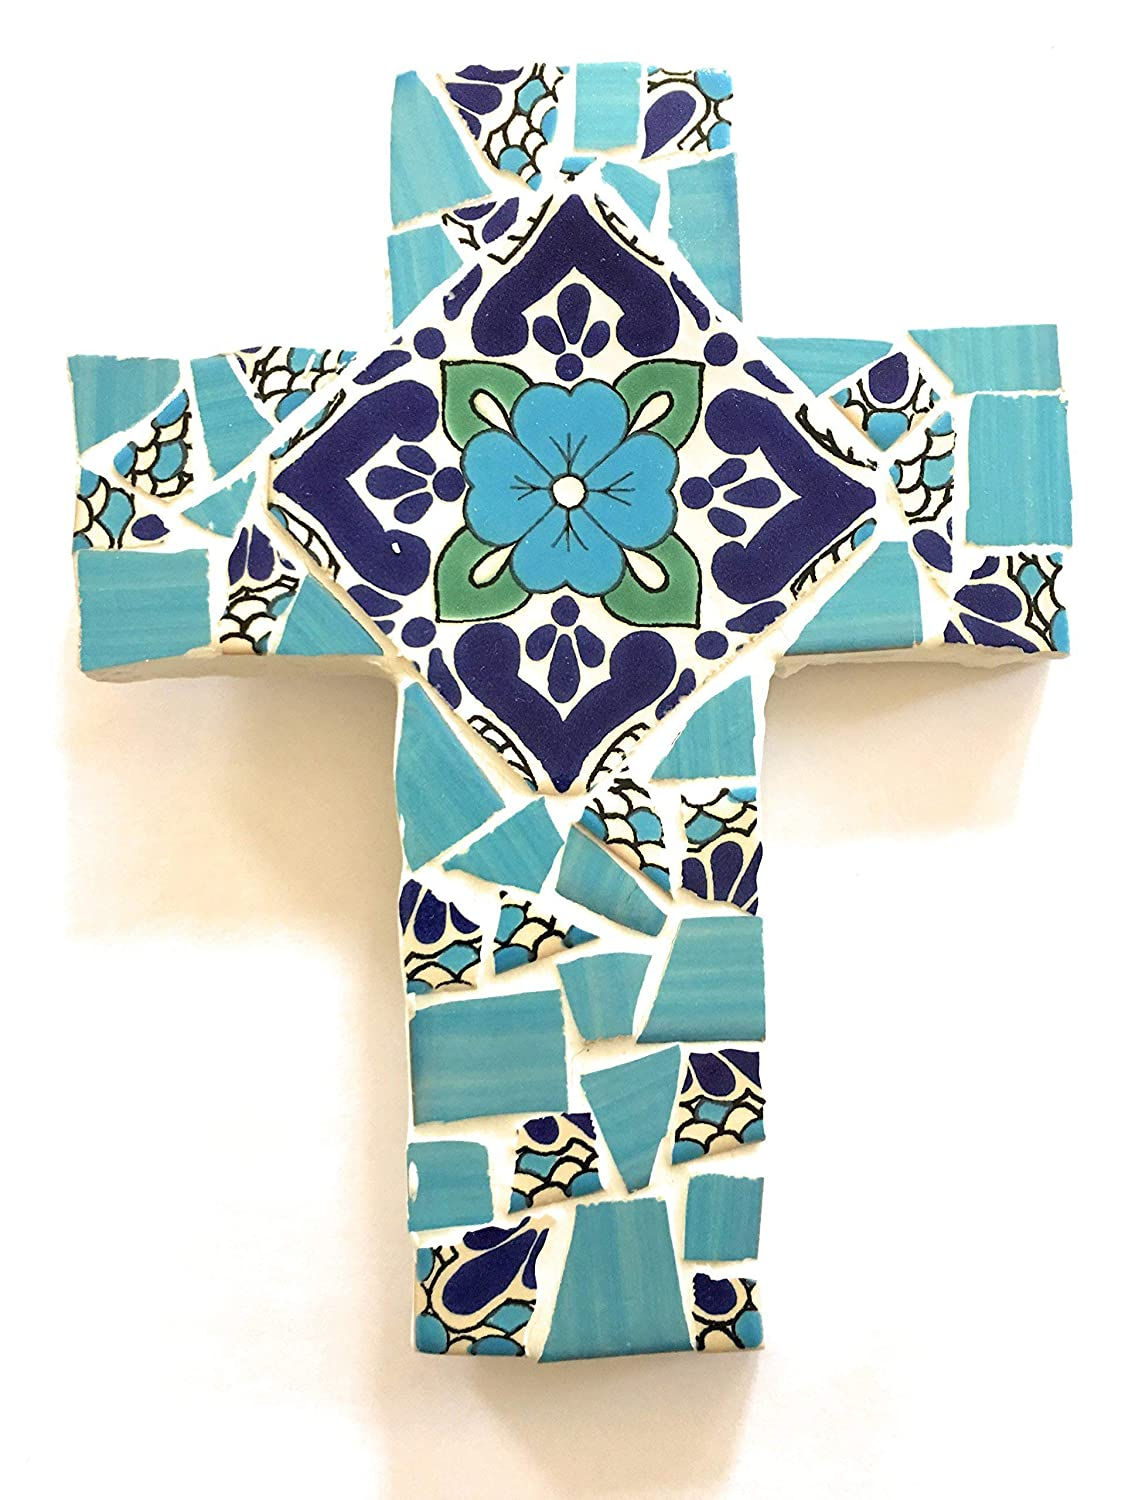 Mexican Tile Talavera Wall Mosaic Cross Assorted Blue and White Ceramic tile